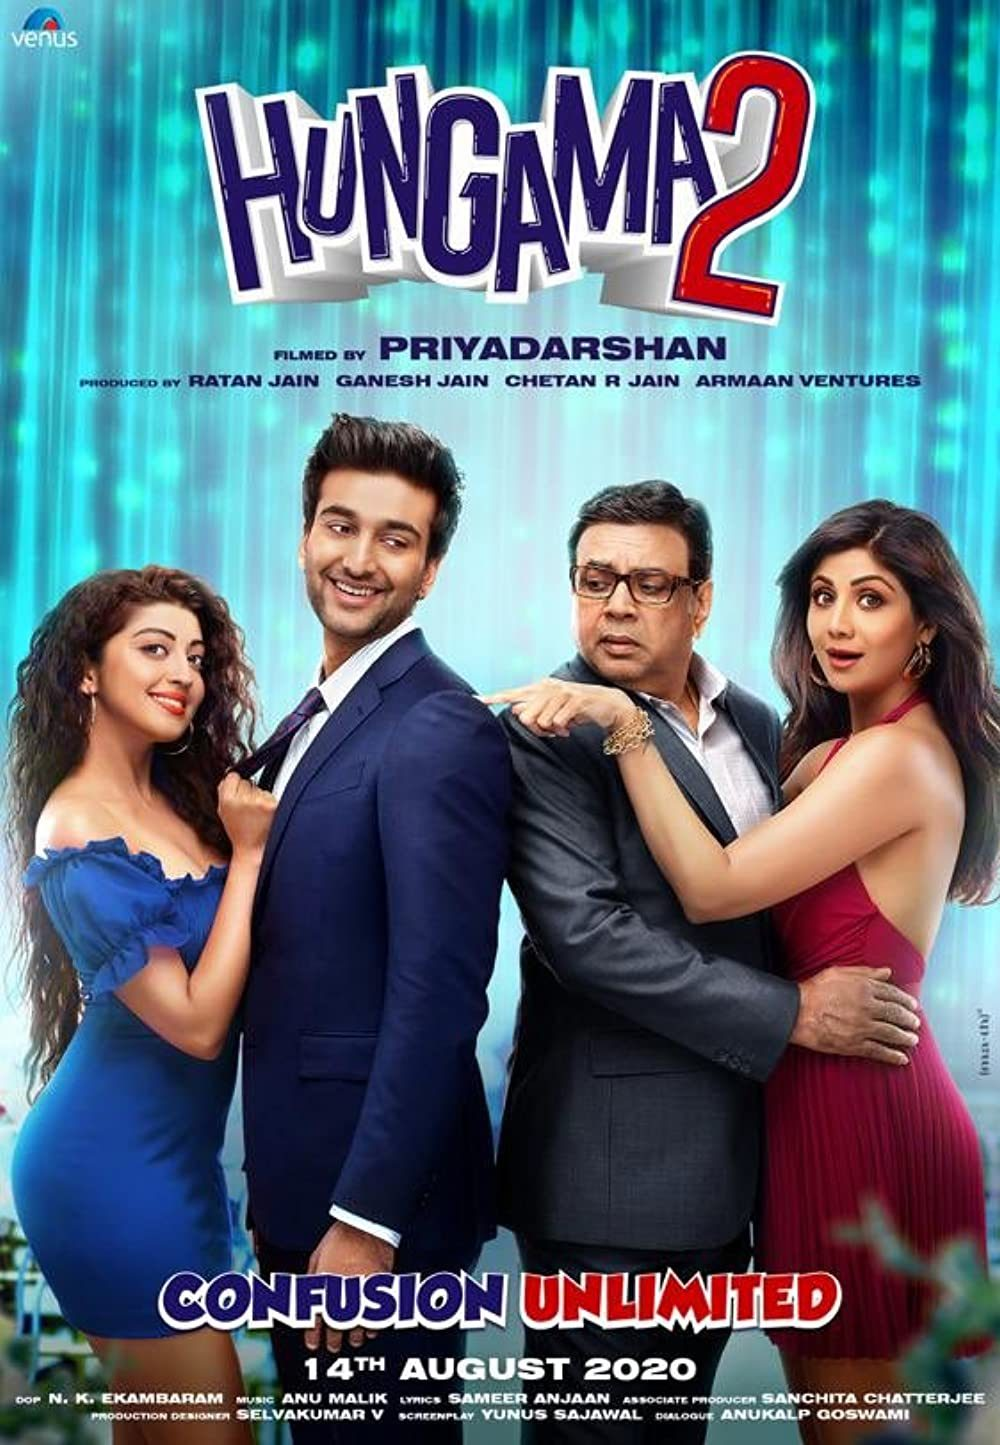 [Movie] Hungama 2 (2021) – Bollywood Movie | Mp4 Download